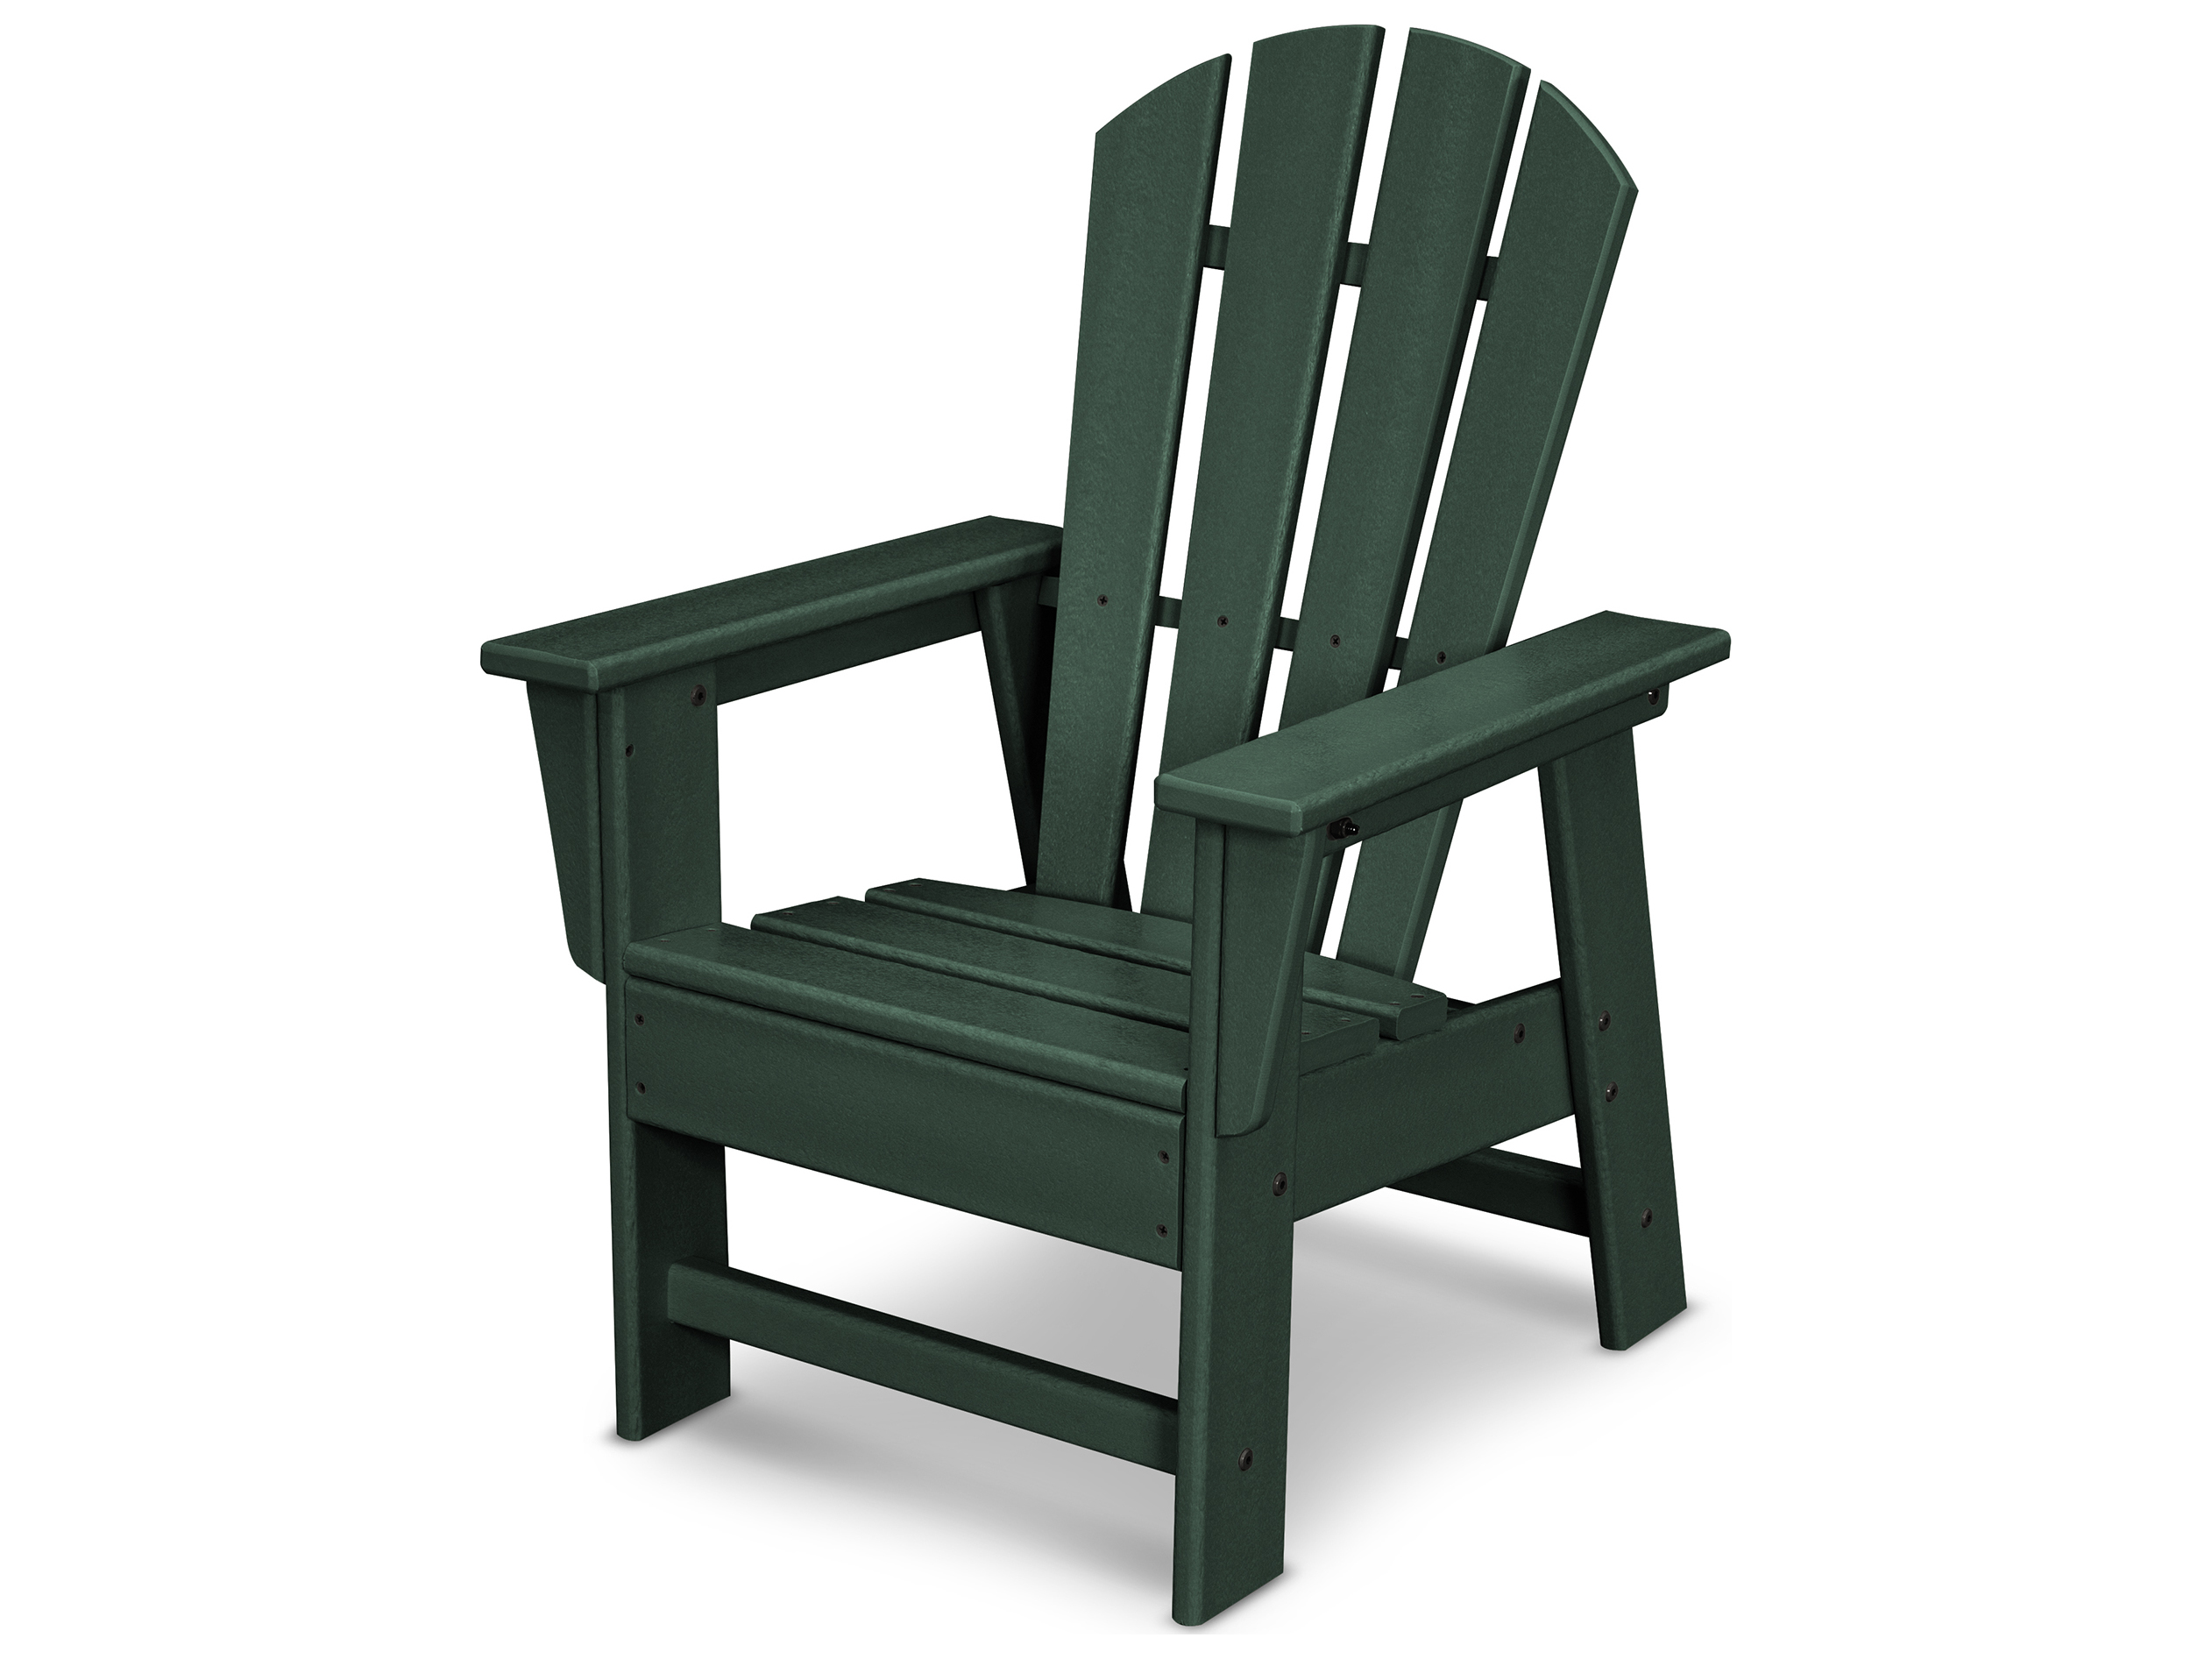 polywood south beach recycled plastic child size adirondack chair pwsbd12. Black Bedroom Furniture Sets. Home Design Ideas